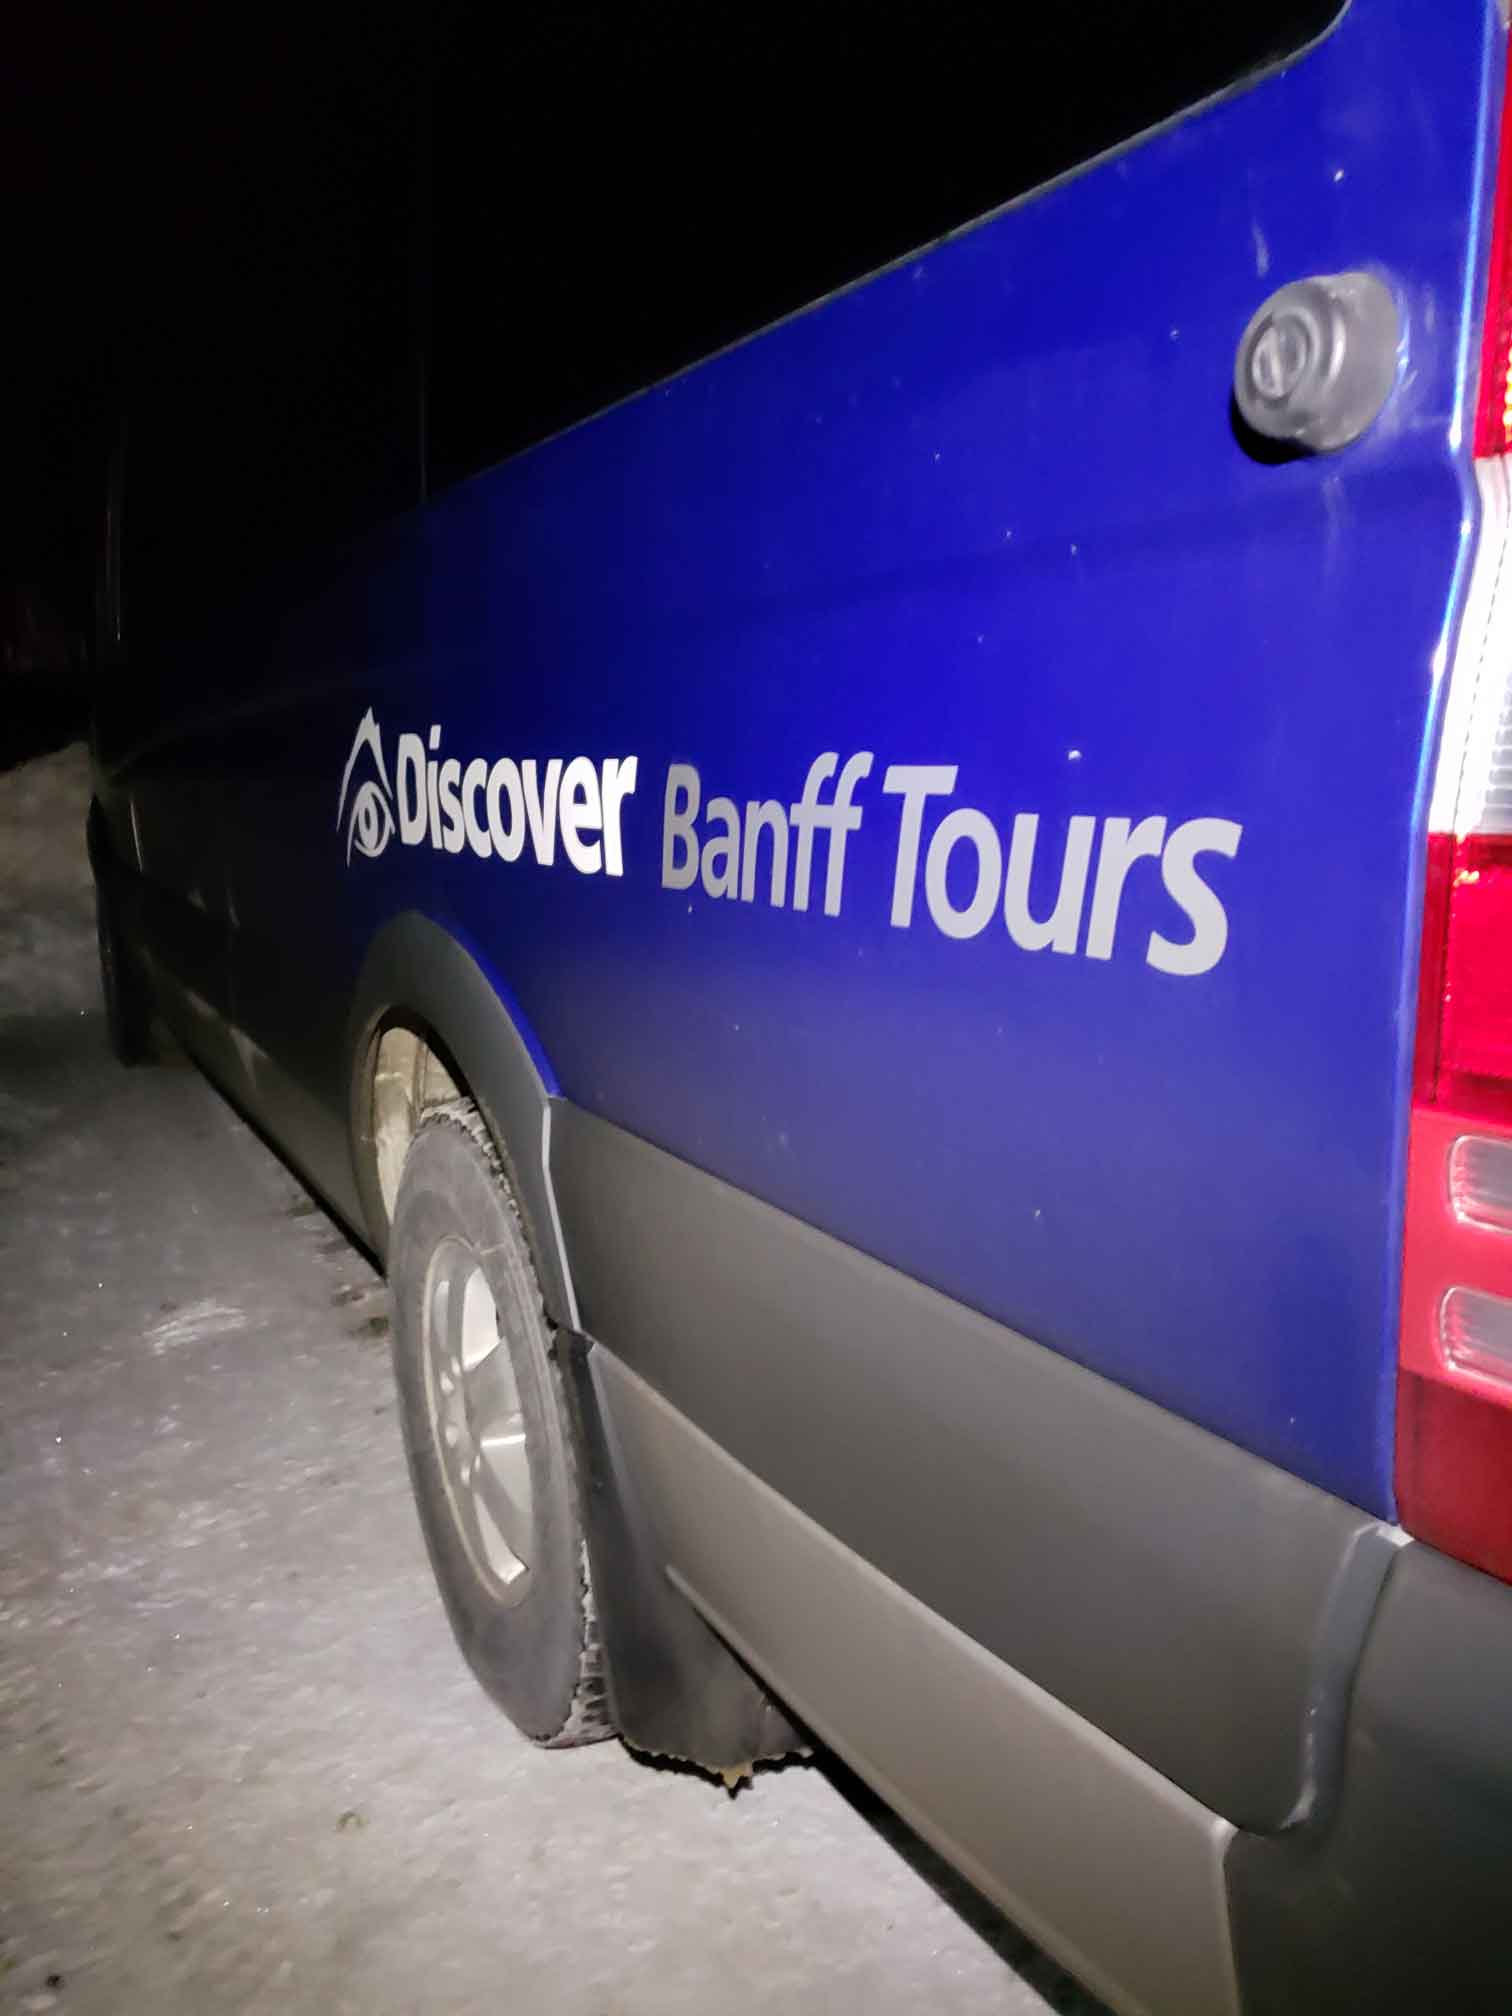 Discover Banff Tours bus by Kate Barker